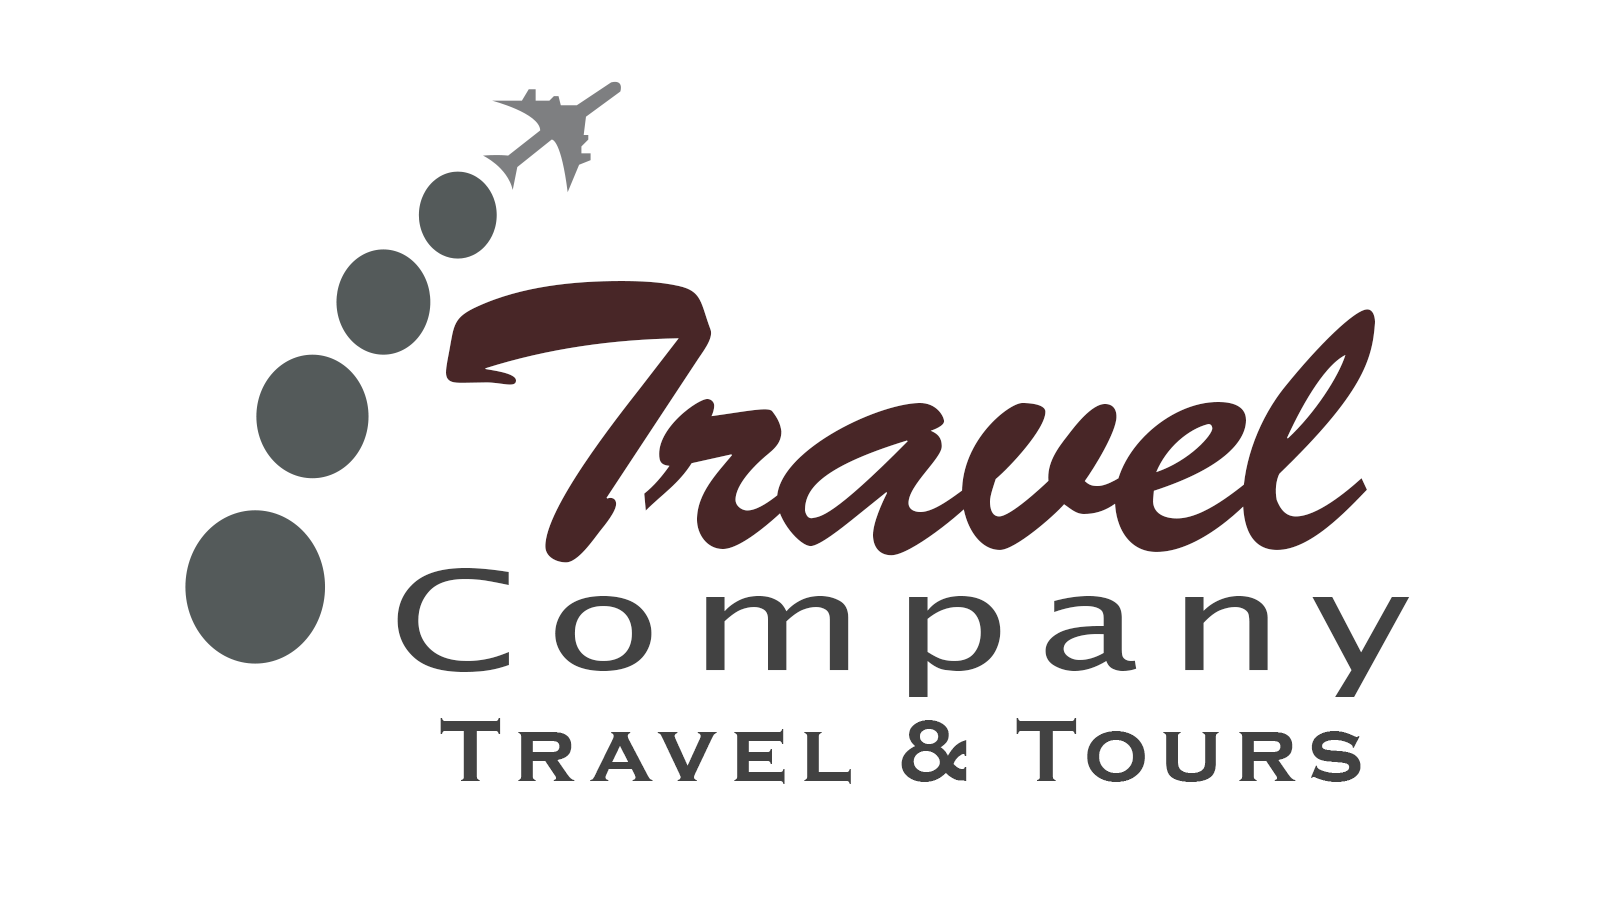 Travel-Company-Tours-&-Travels-Logo